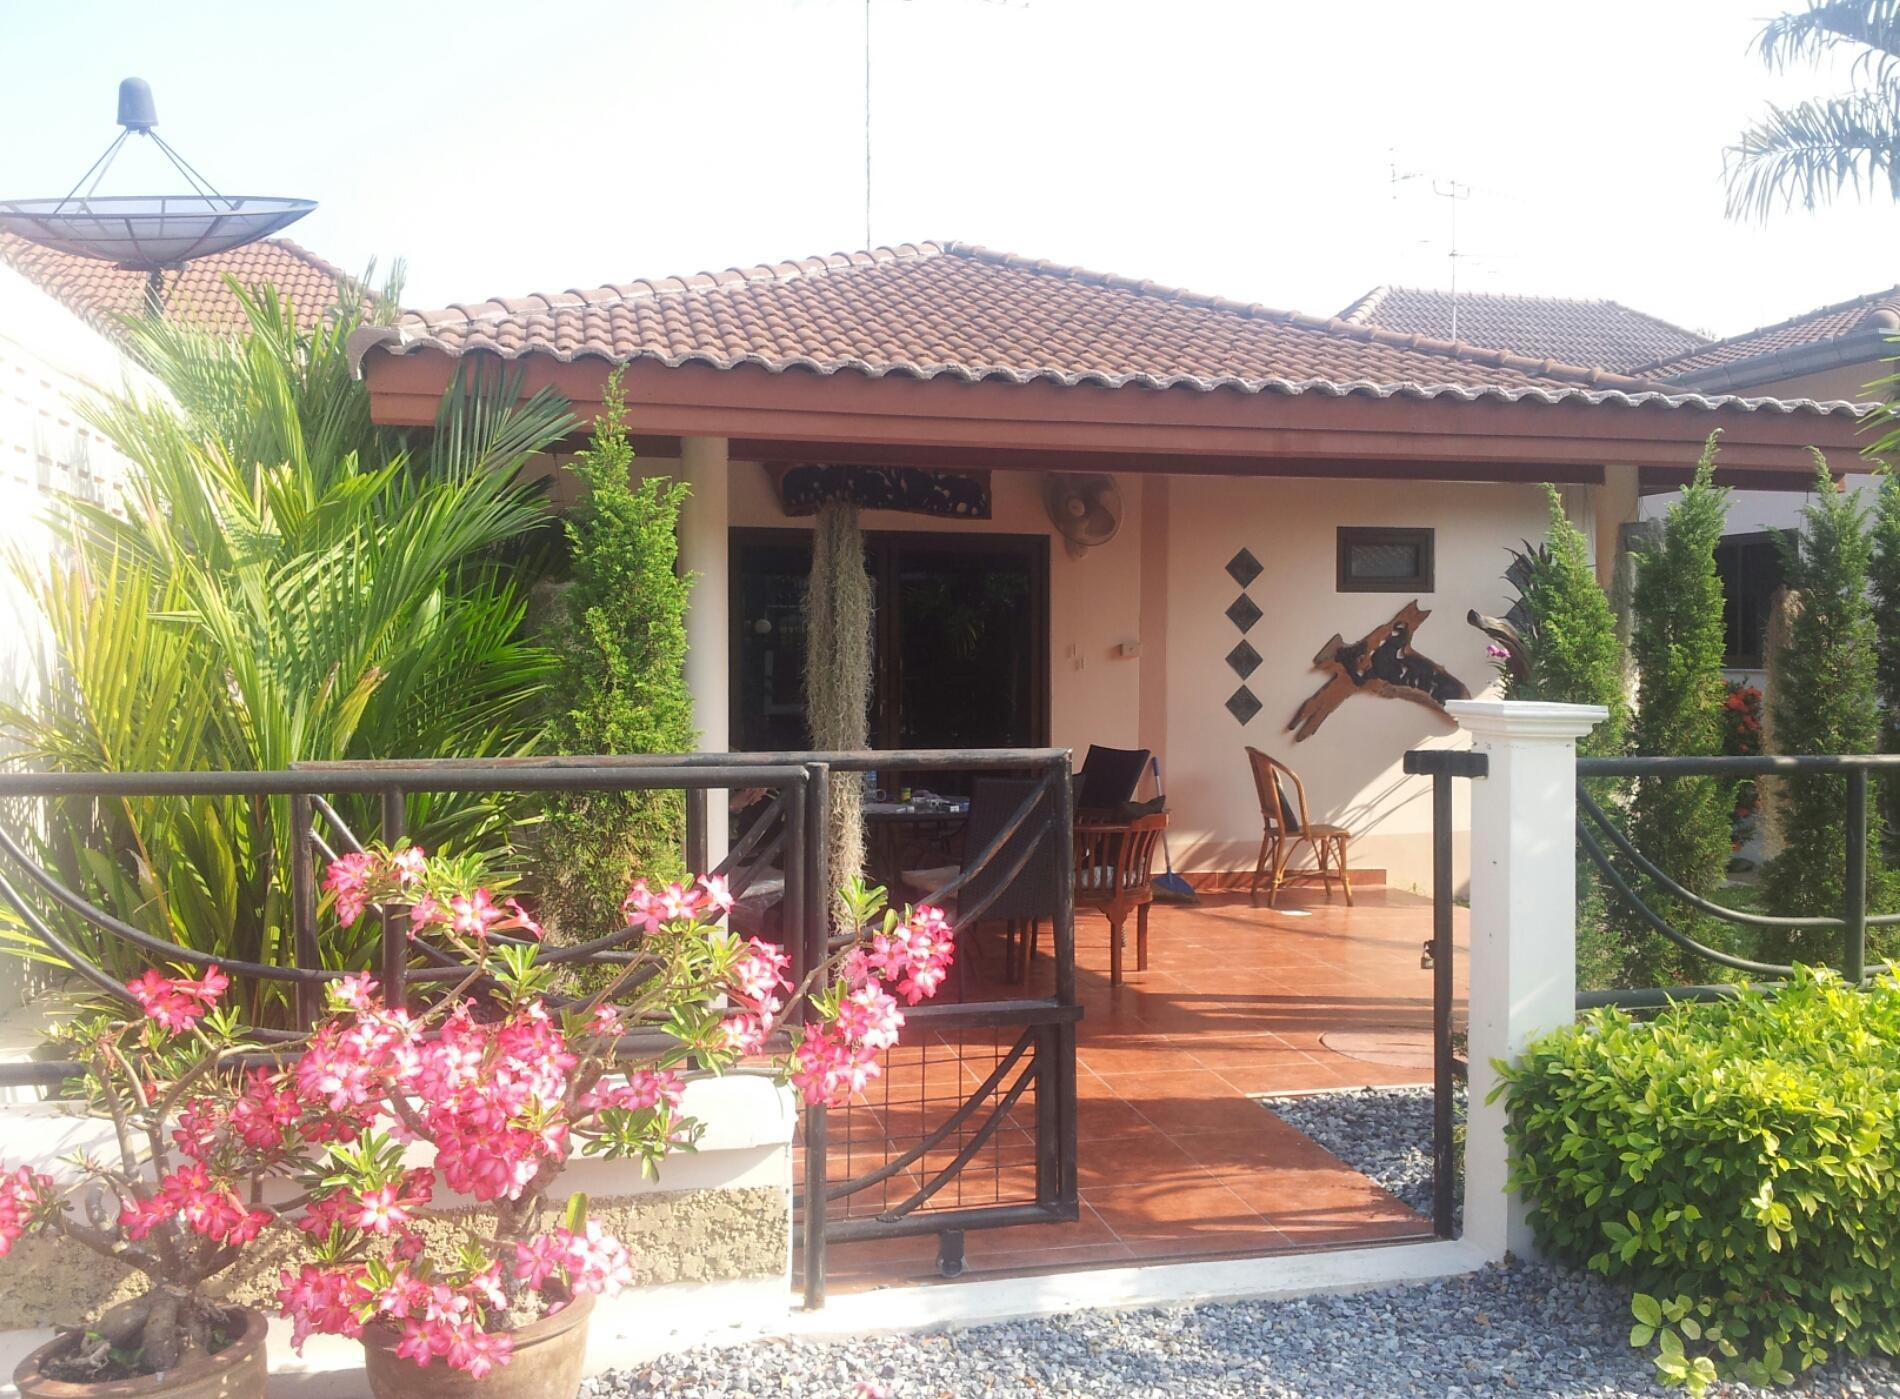 Debbies House.FREE WIFI BBQ GRILL close to Beach. Debbies House.FREE WIFI BBQ GRILL close to Beach.